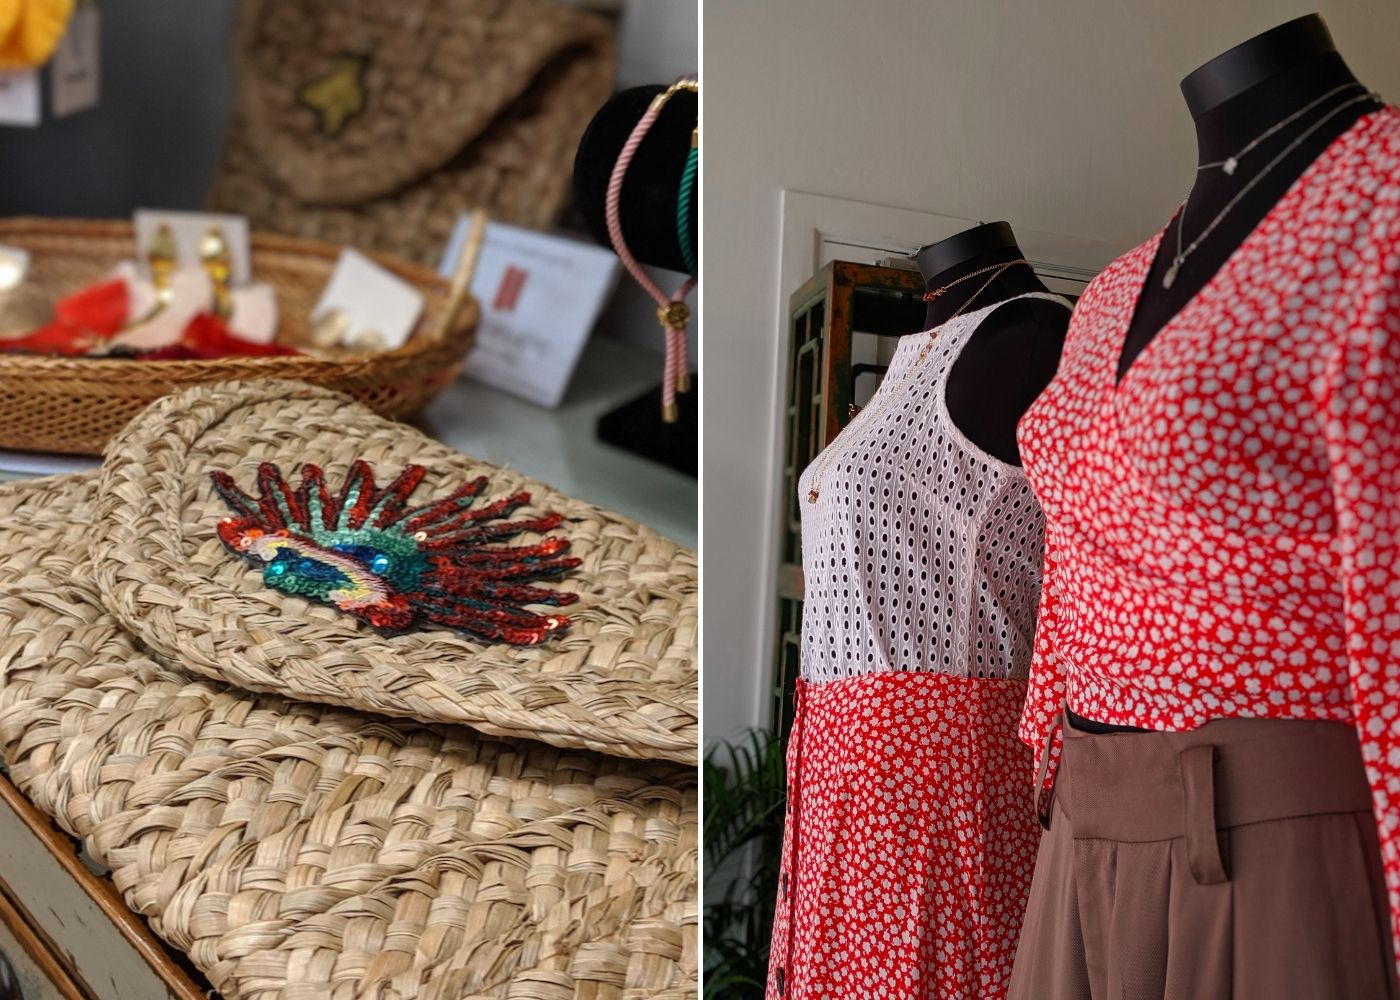 Colourful outfits and accessories at The WYLD Shop Joo Chiat